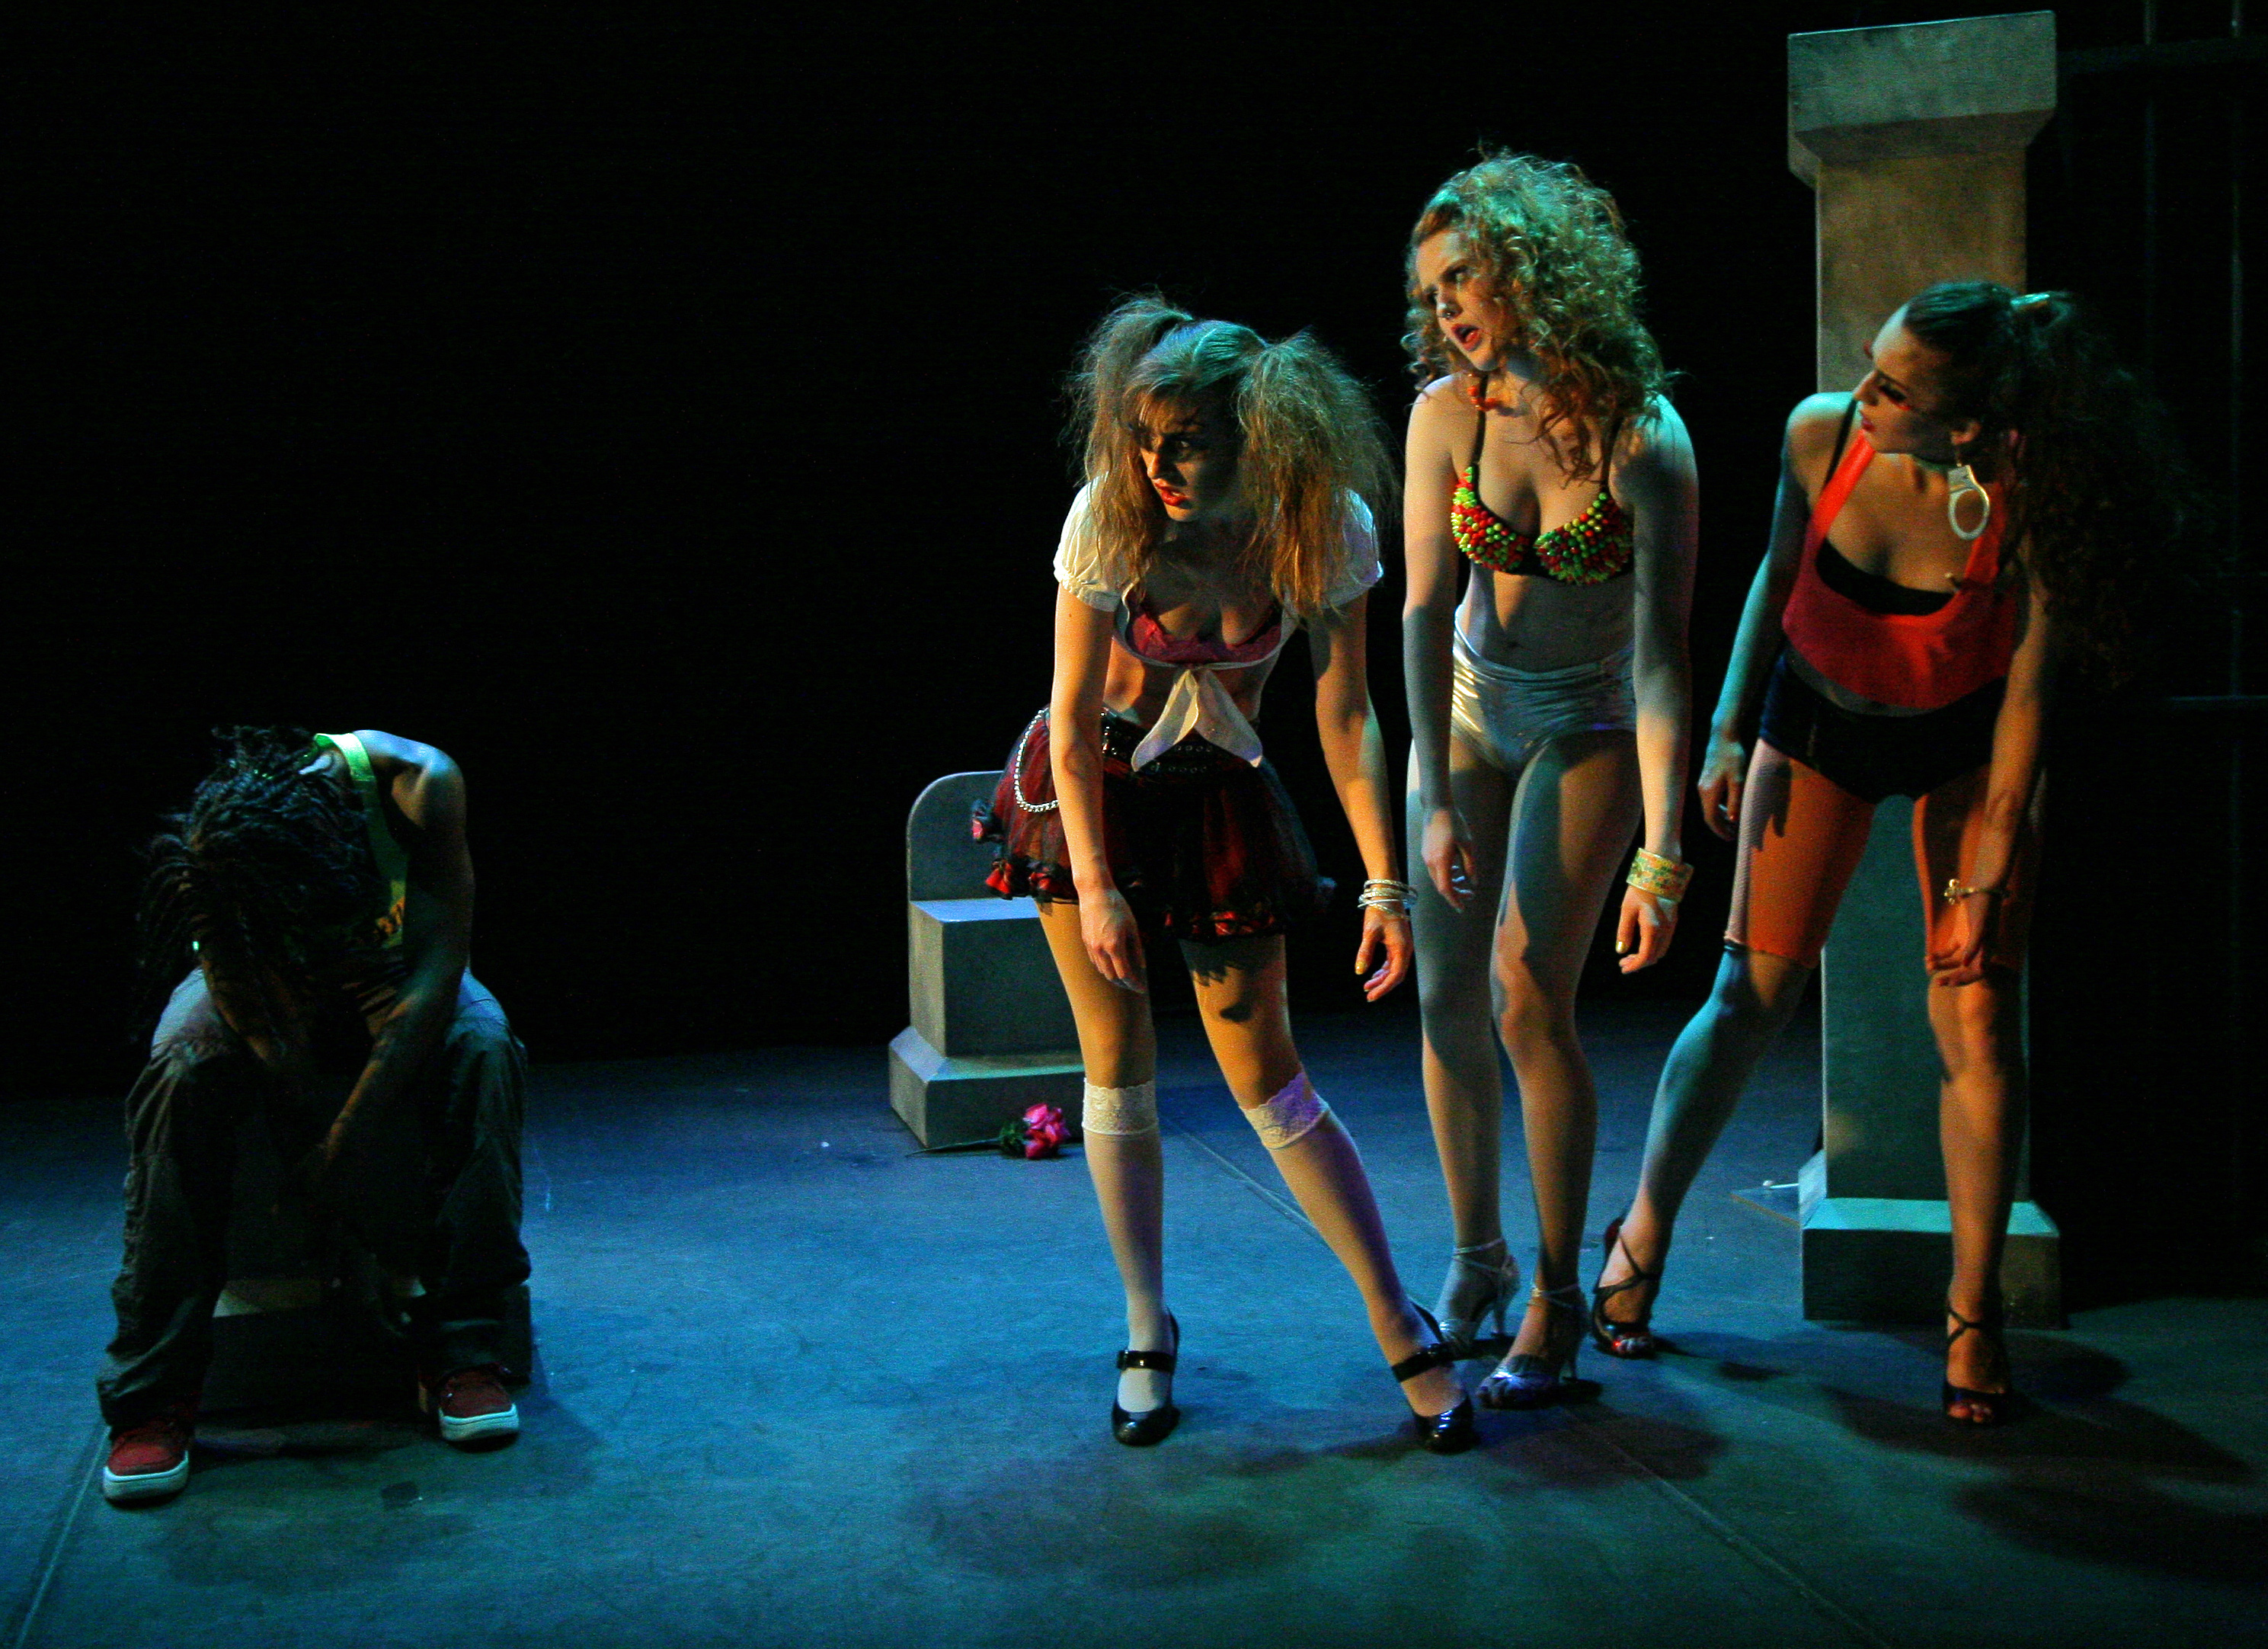 BWW Reviews: NYMF's ZOMBIE STRIPPERS Needs Reworking Before Reanimation